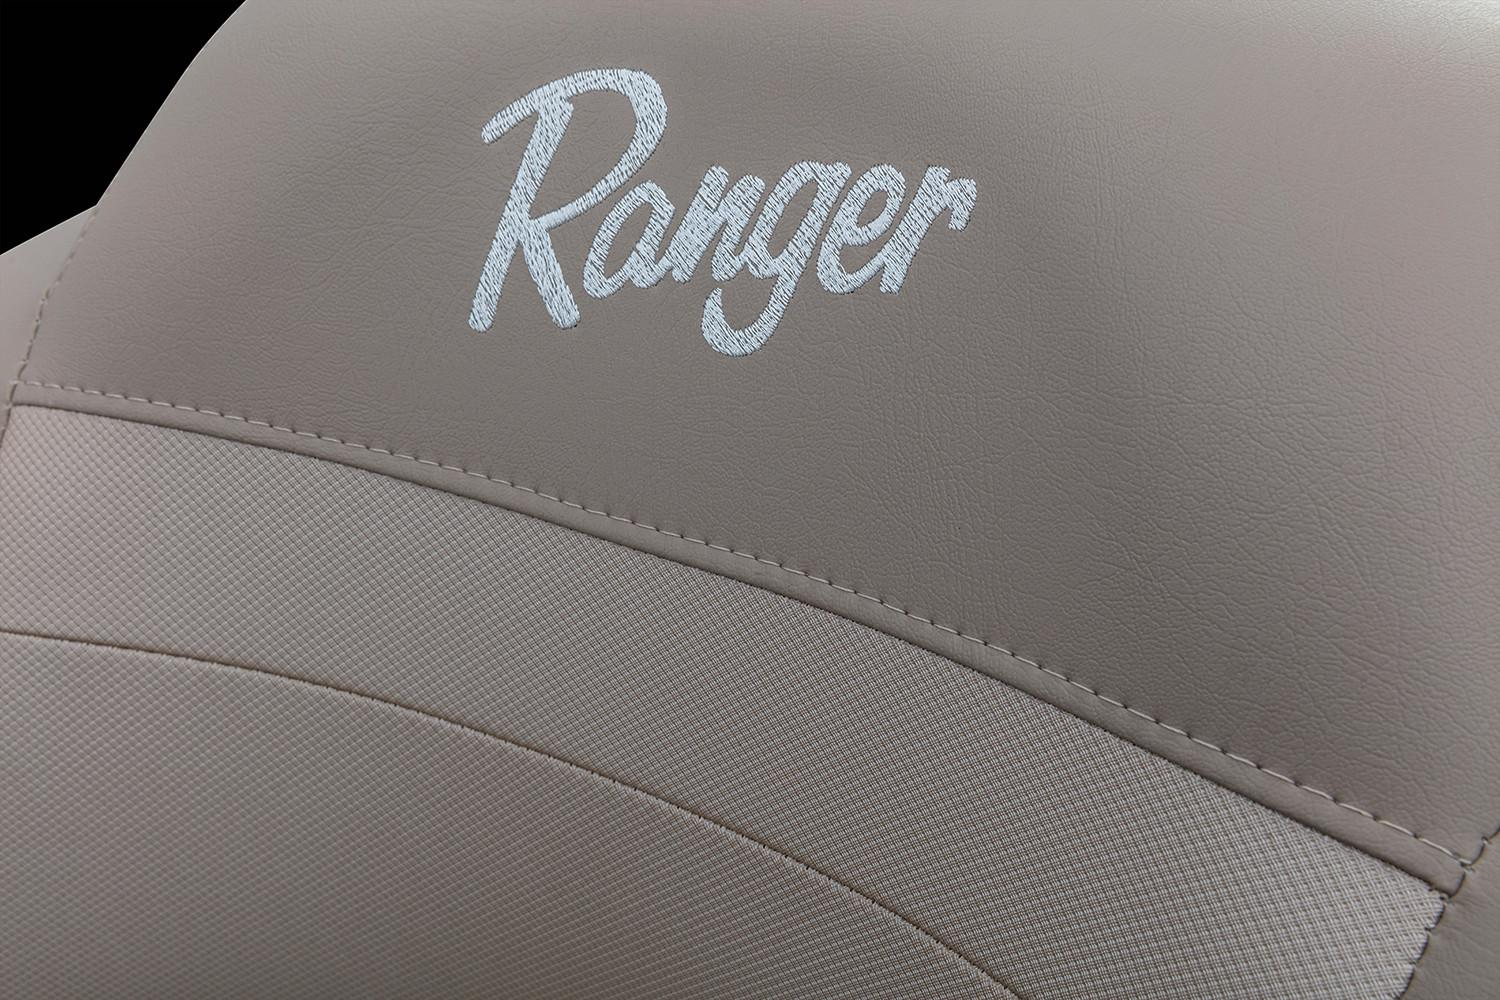 2020 Ranger Reata 200F in Roscoe, Illinois - Photo 29